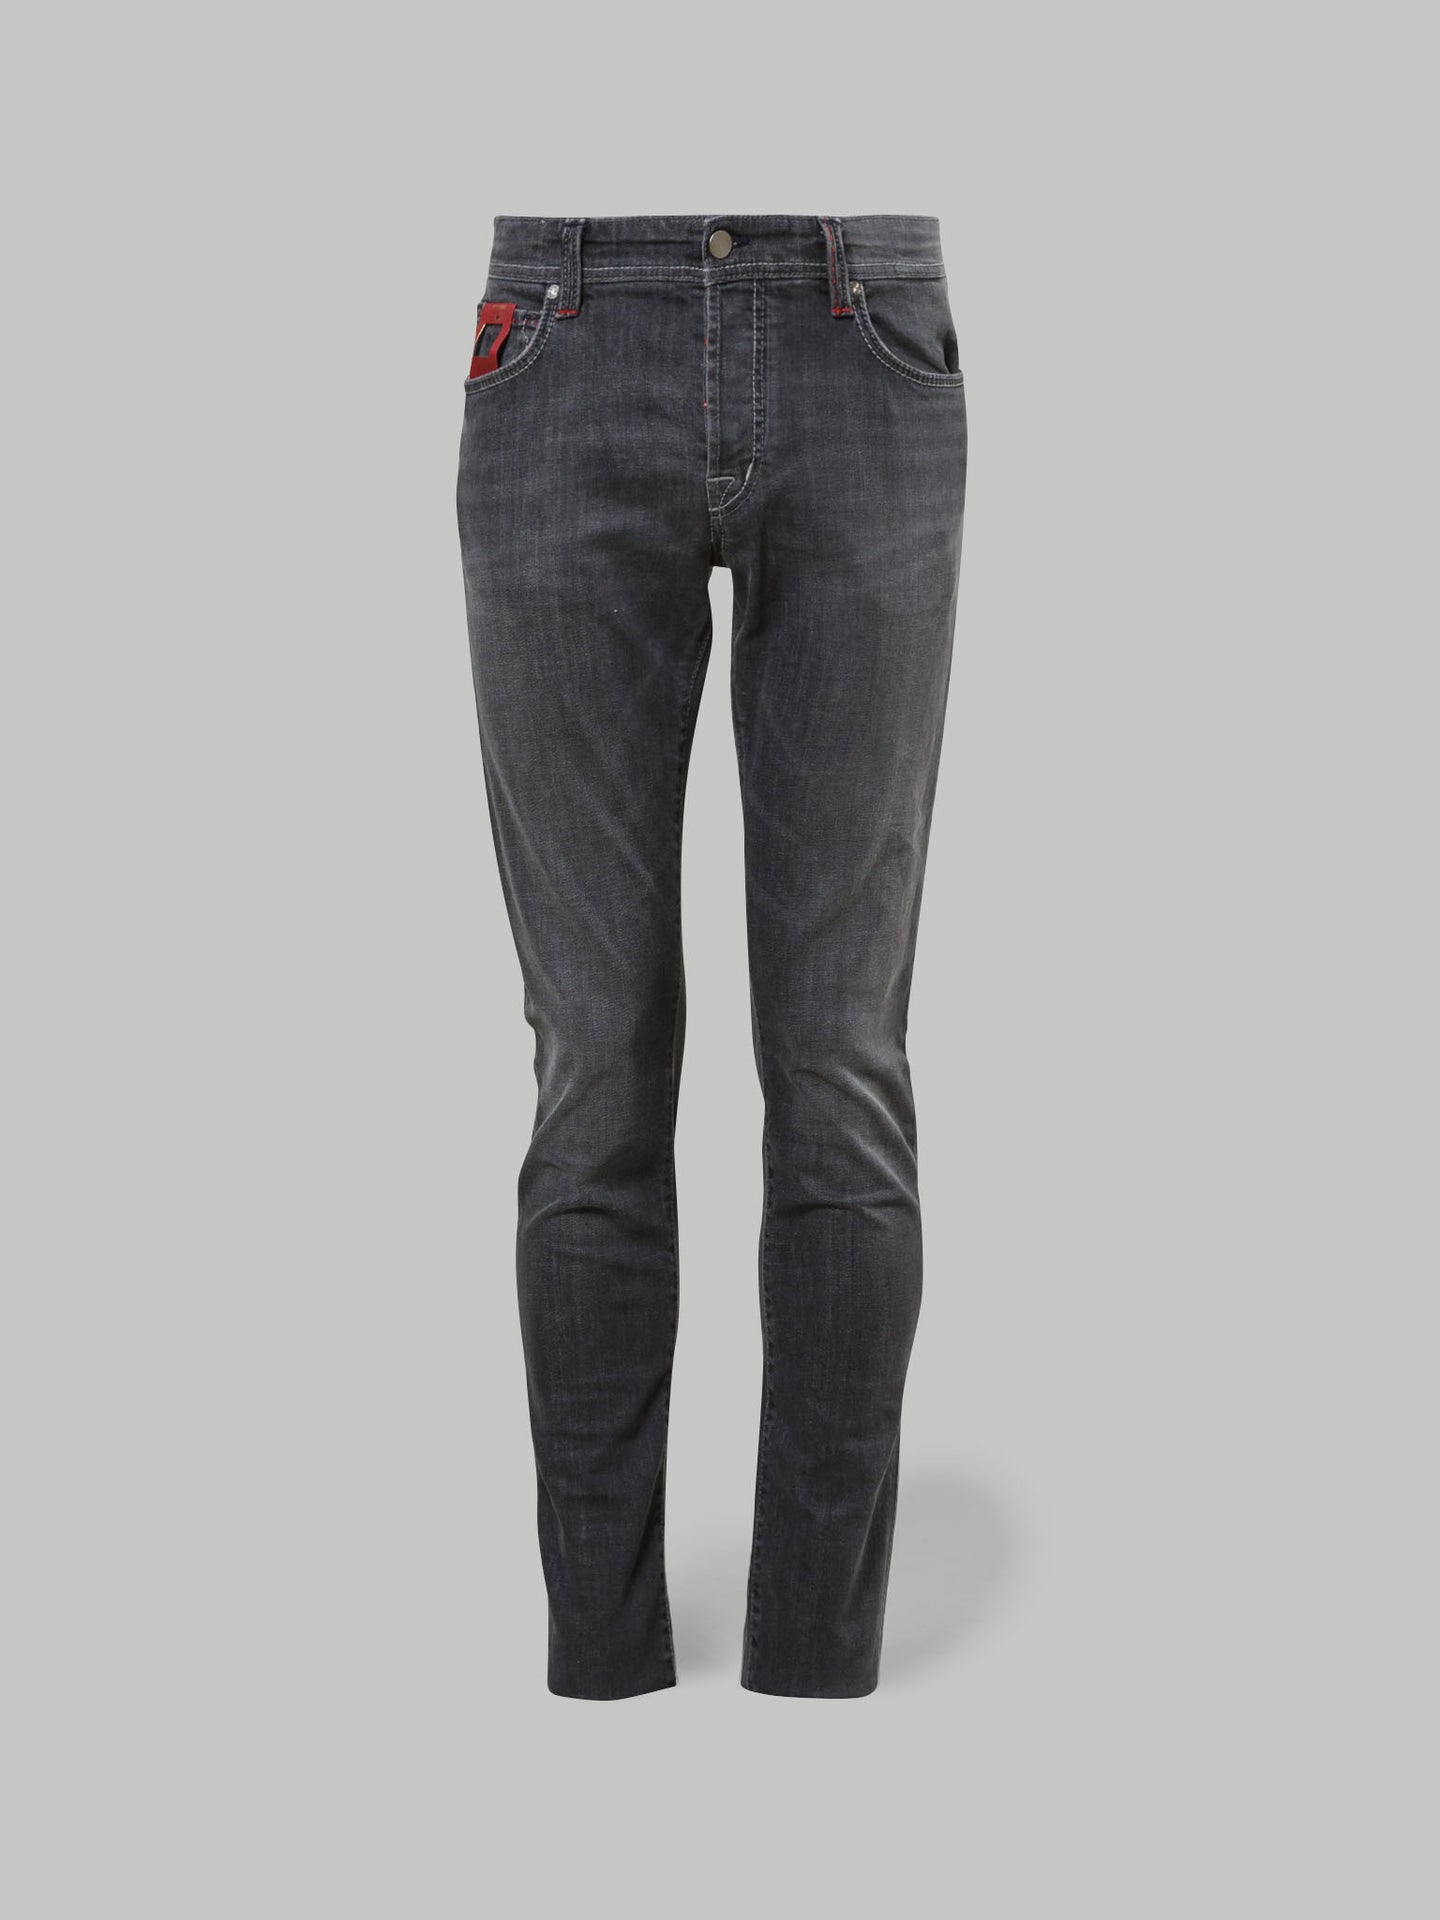 Tramarossa Leonardo Slim Fit 6 Moons Jean (Grey) - Union 22